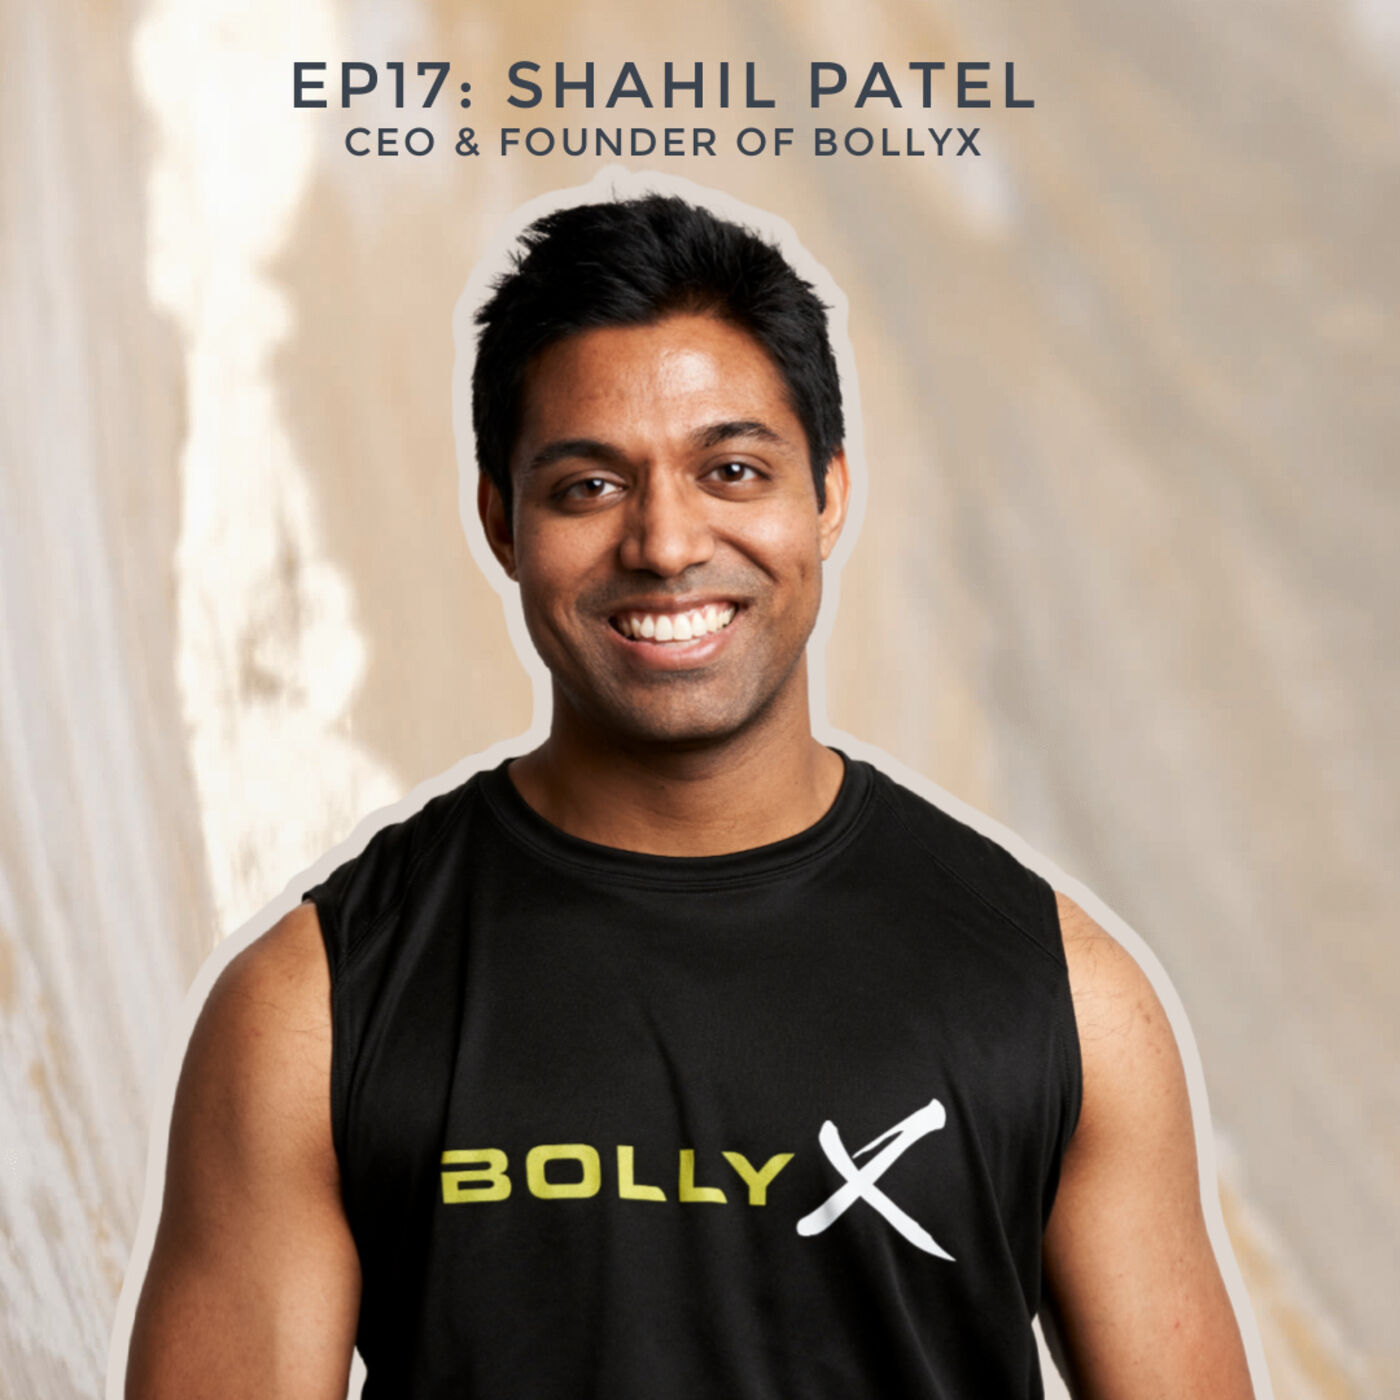 Building a Bollywood-based Fitness Movement with Shahil Patel, CEO & Founder of BollyX